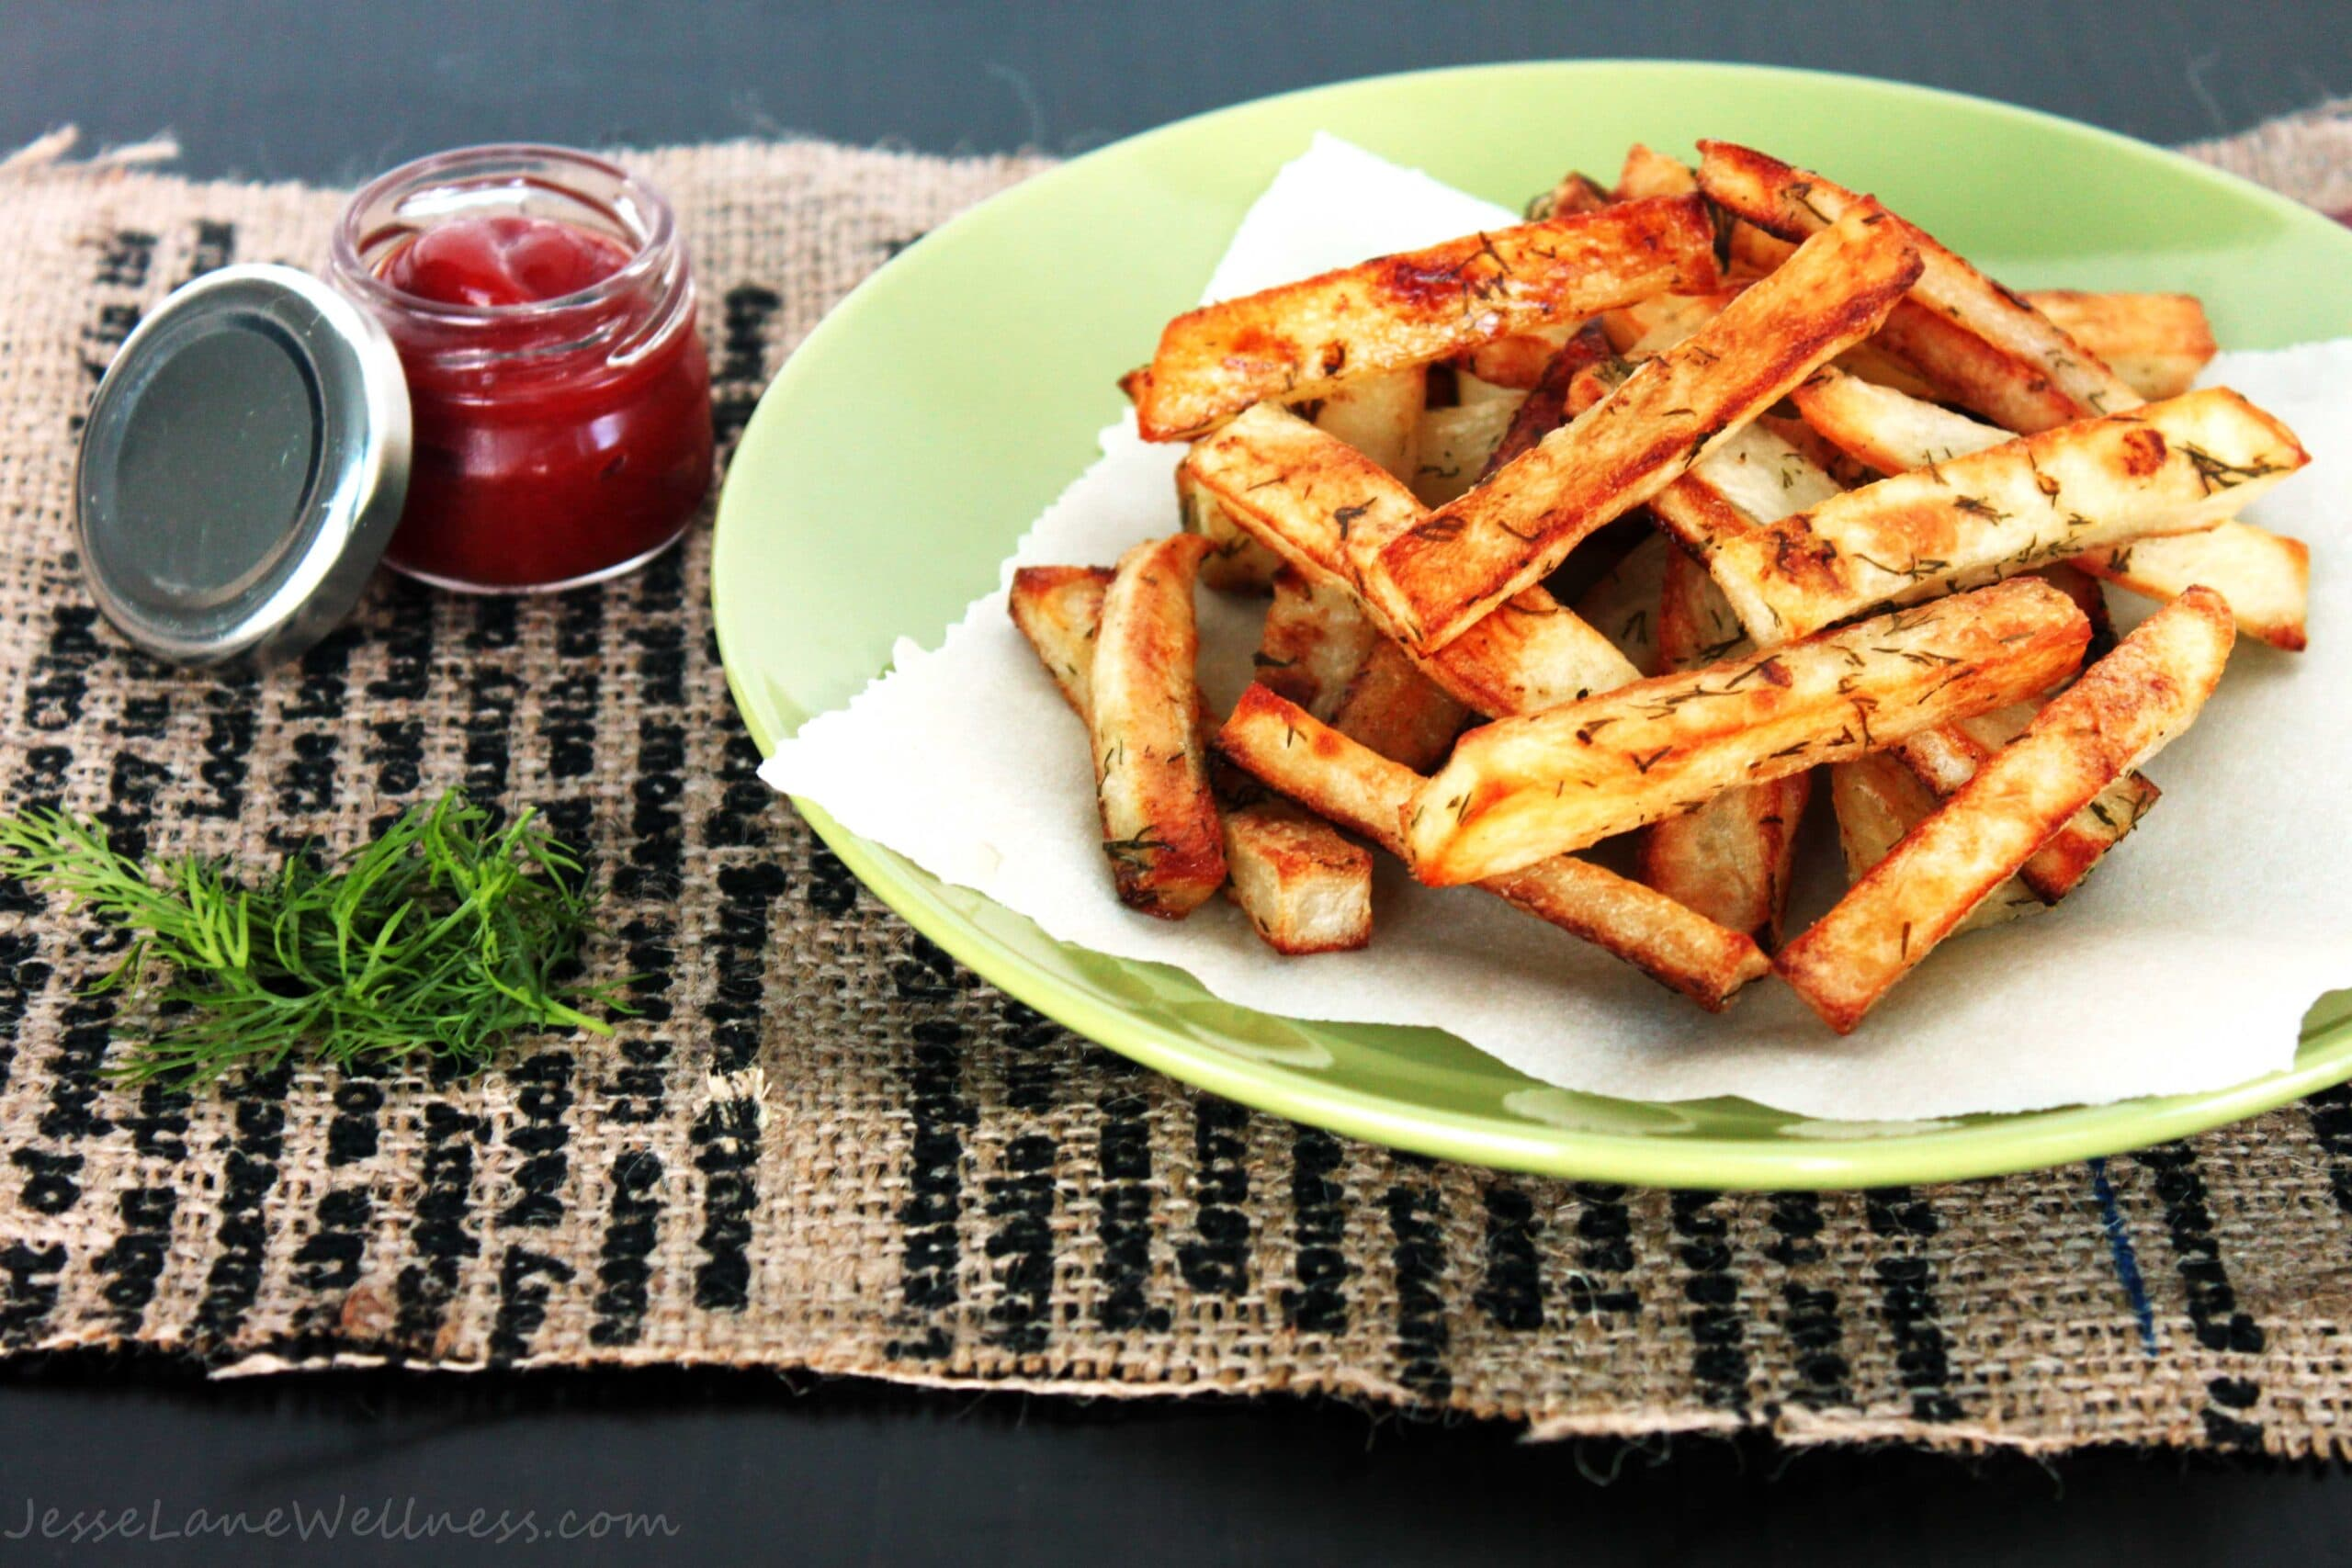 Dill Pickle Fries by @JesseLWellness #glutenfree